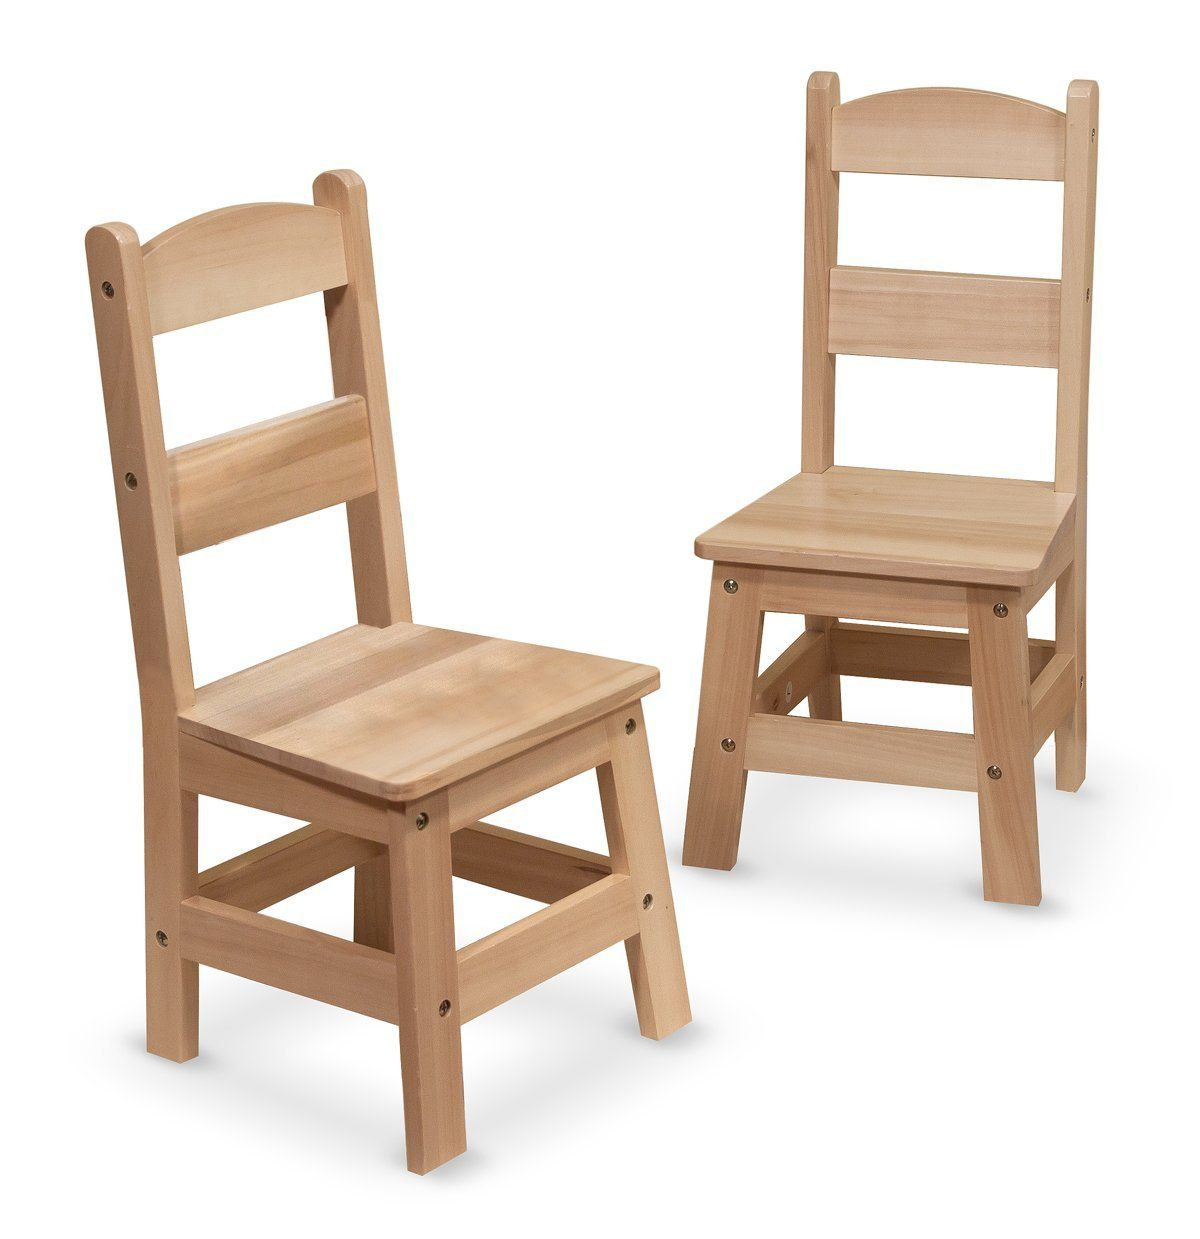 Exceptional Melissa U0026 Doug Wooden Chairs, Set Of 2 These Two Easy To Assemble Hardwood  Chairs Have An Seat Height Thatu0027s Comfy For Kids  Plus Durable Solid Wood